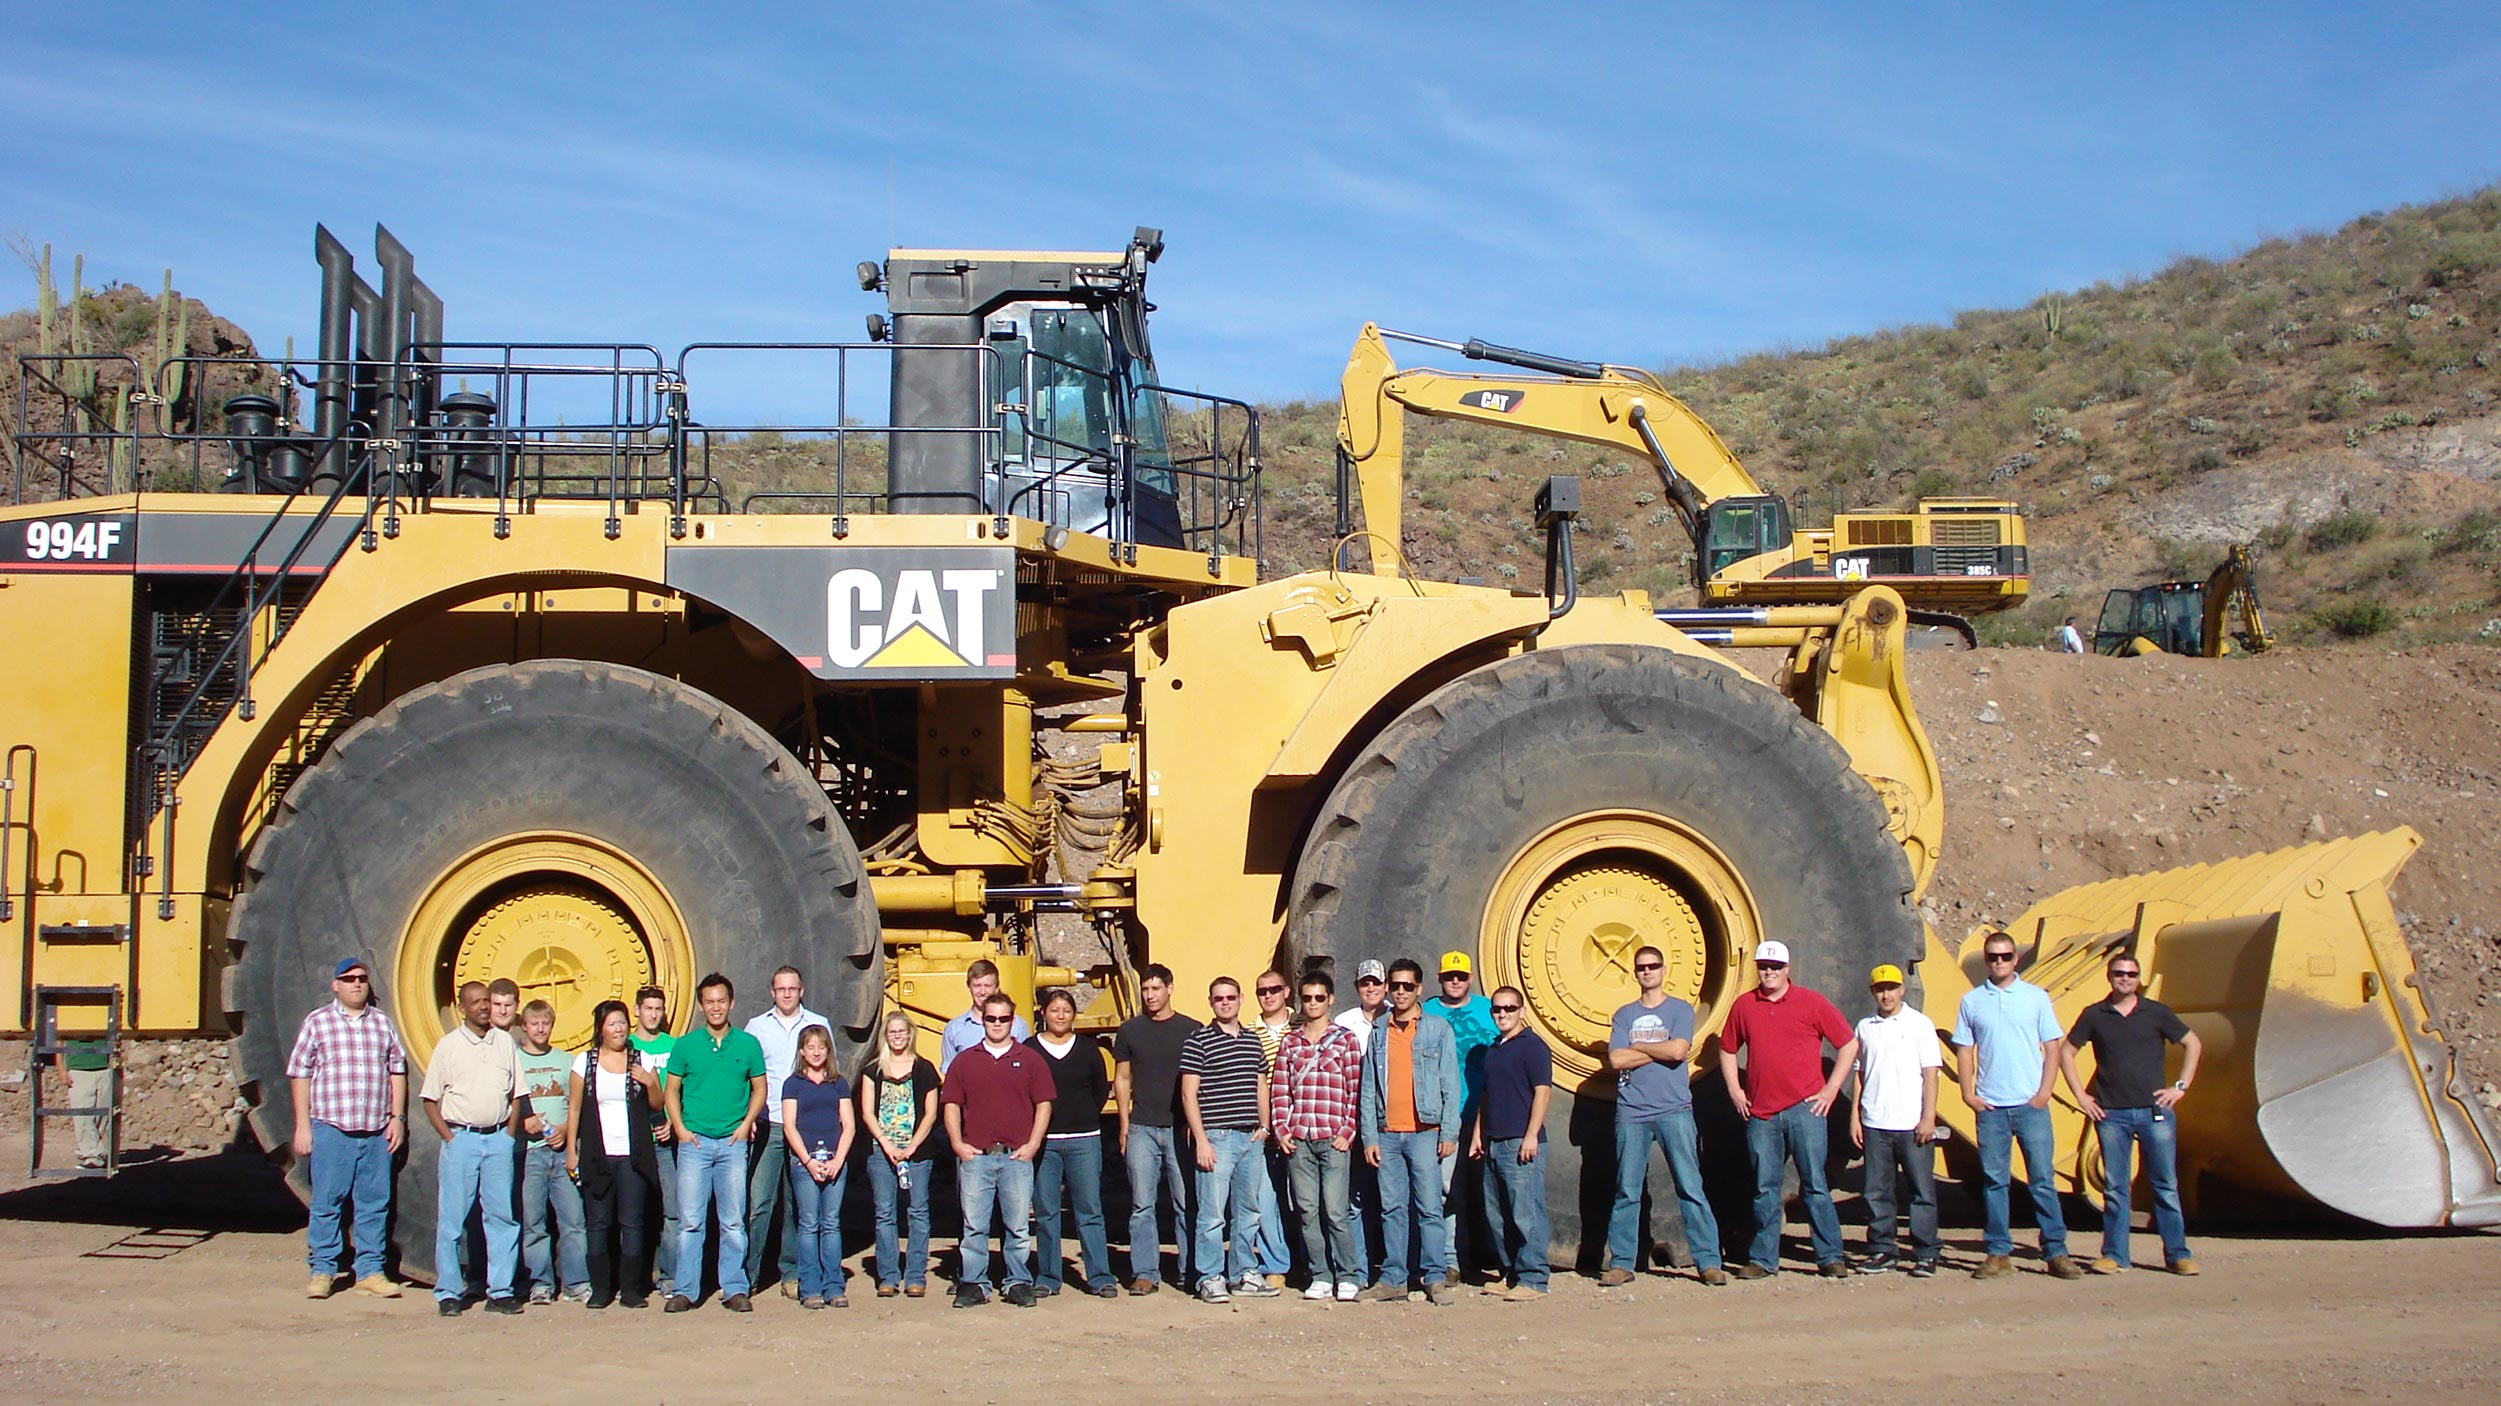 A group of students and construction professionals stand before an enormous CAT construction vehicle